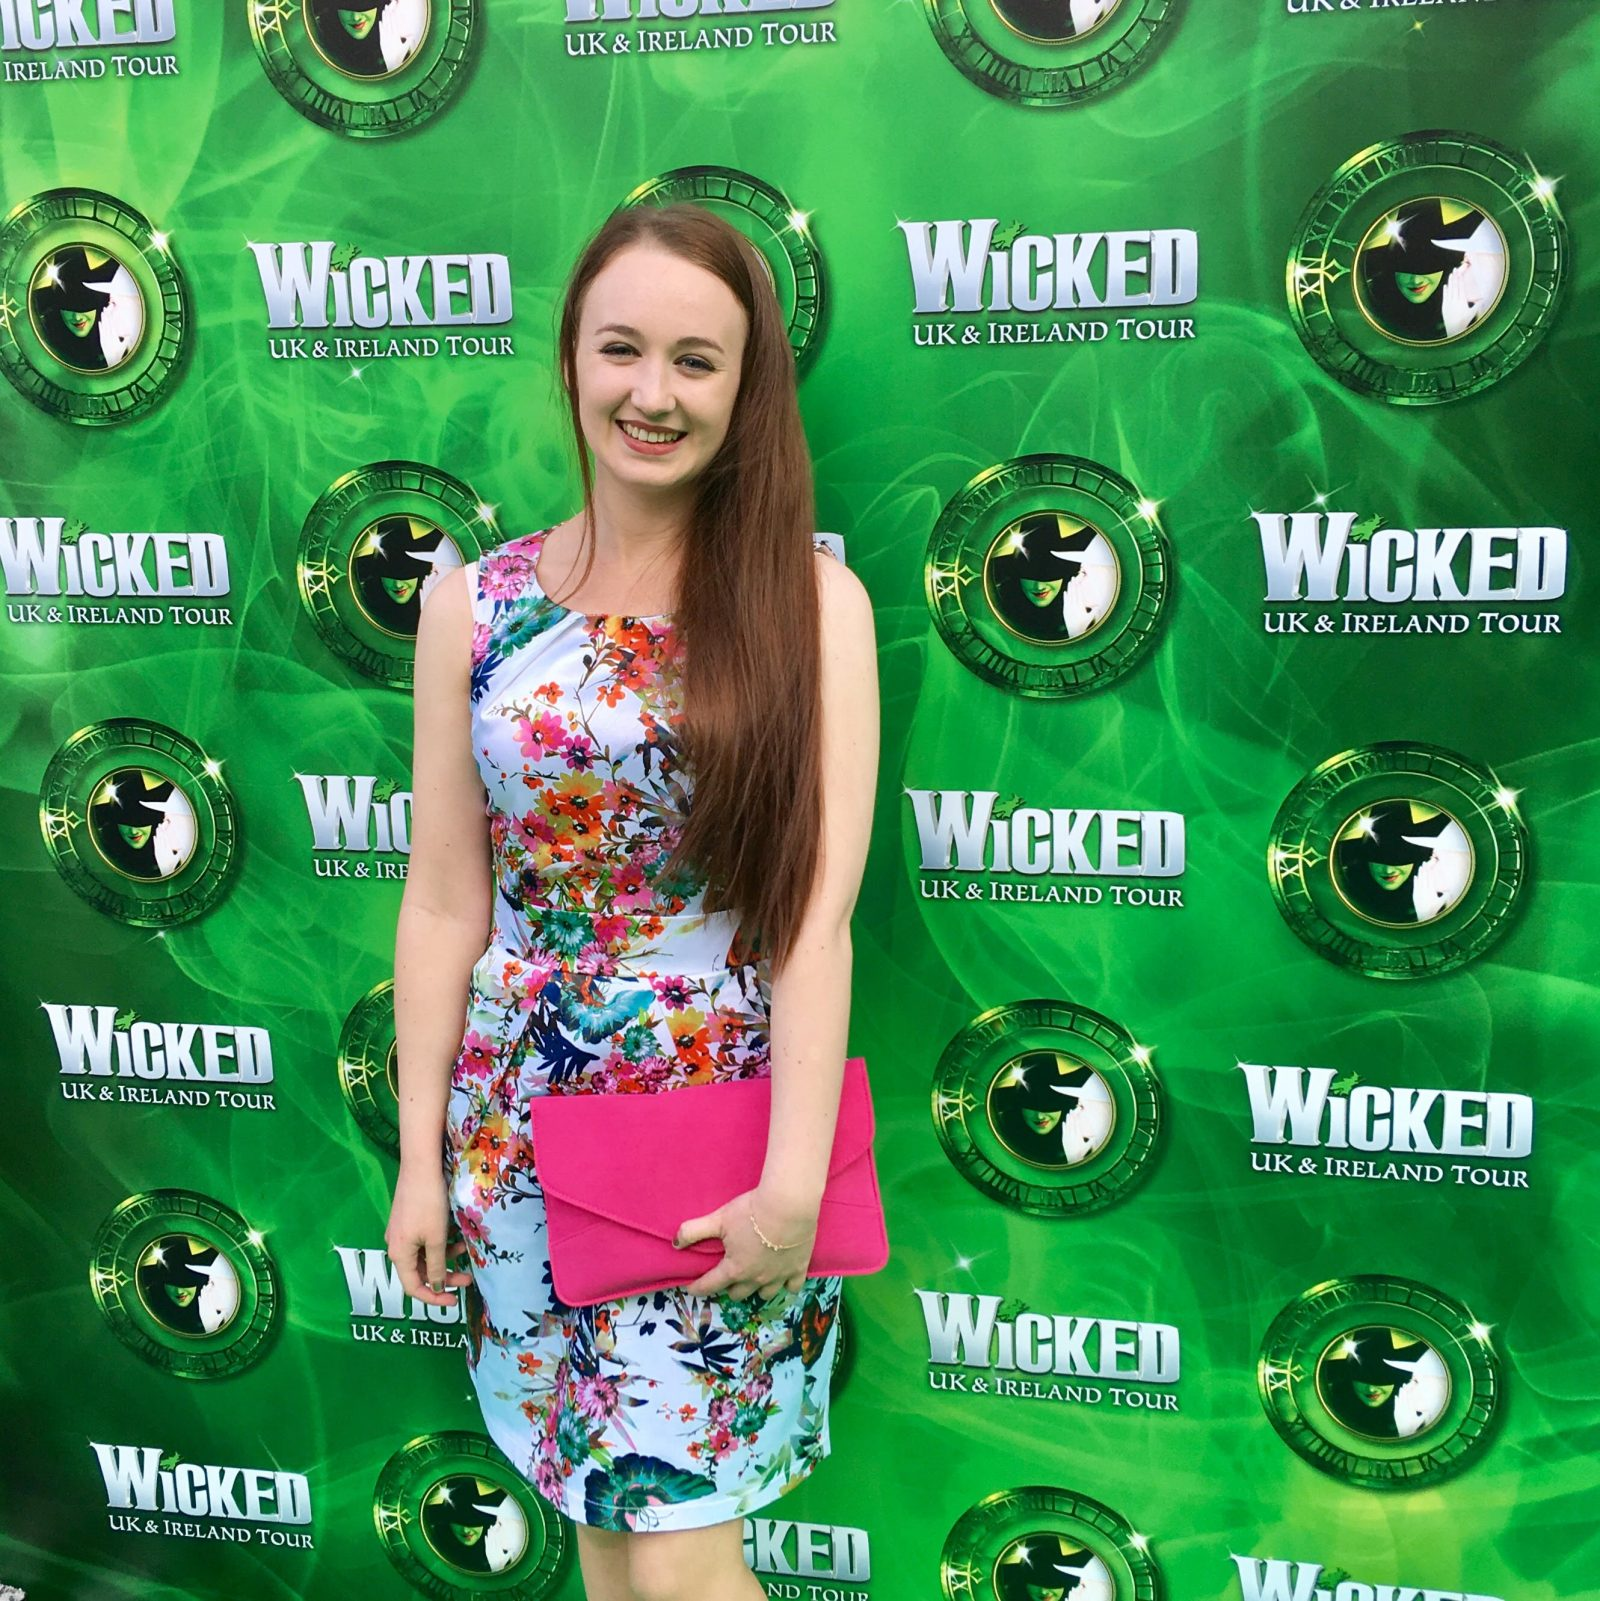 pippa standing in front of green wicked backdrop, wearing floral dress with pink clutch bag